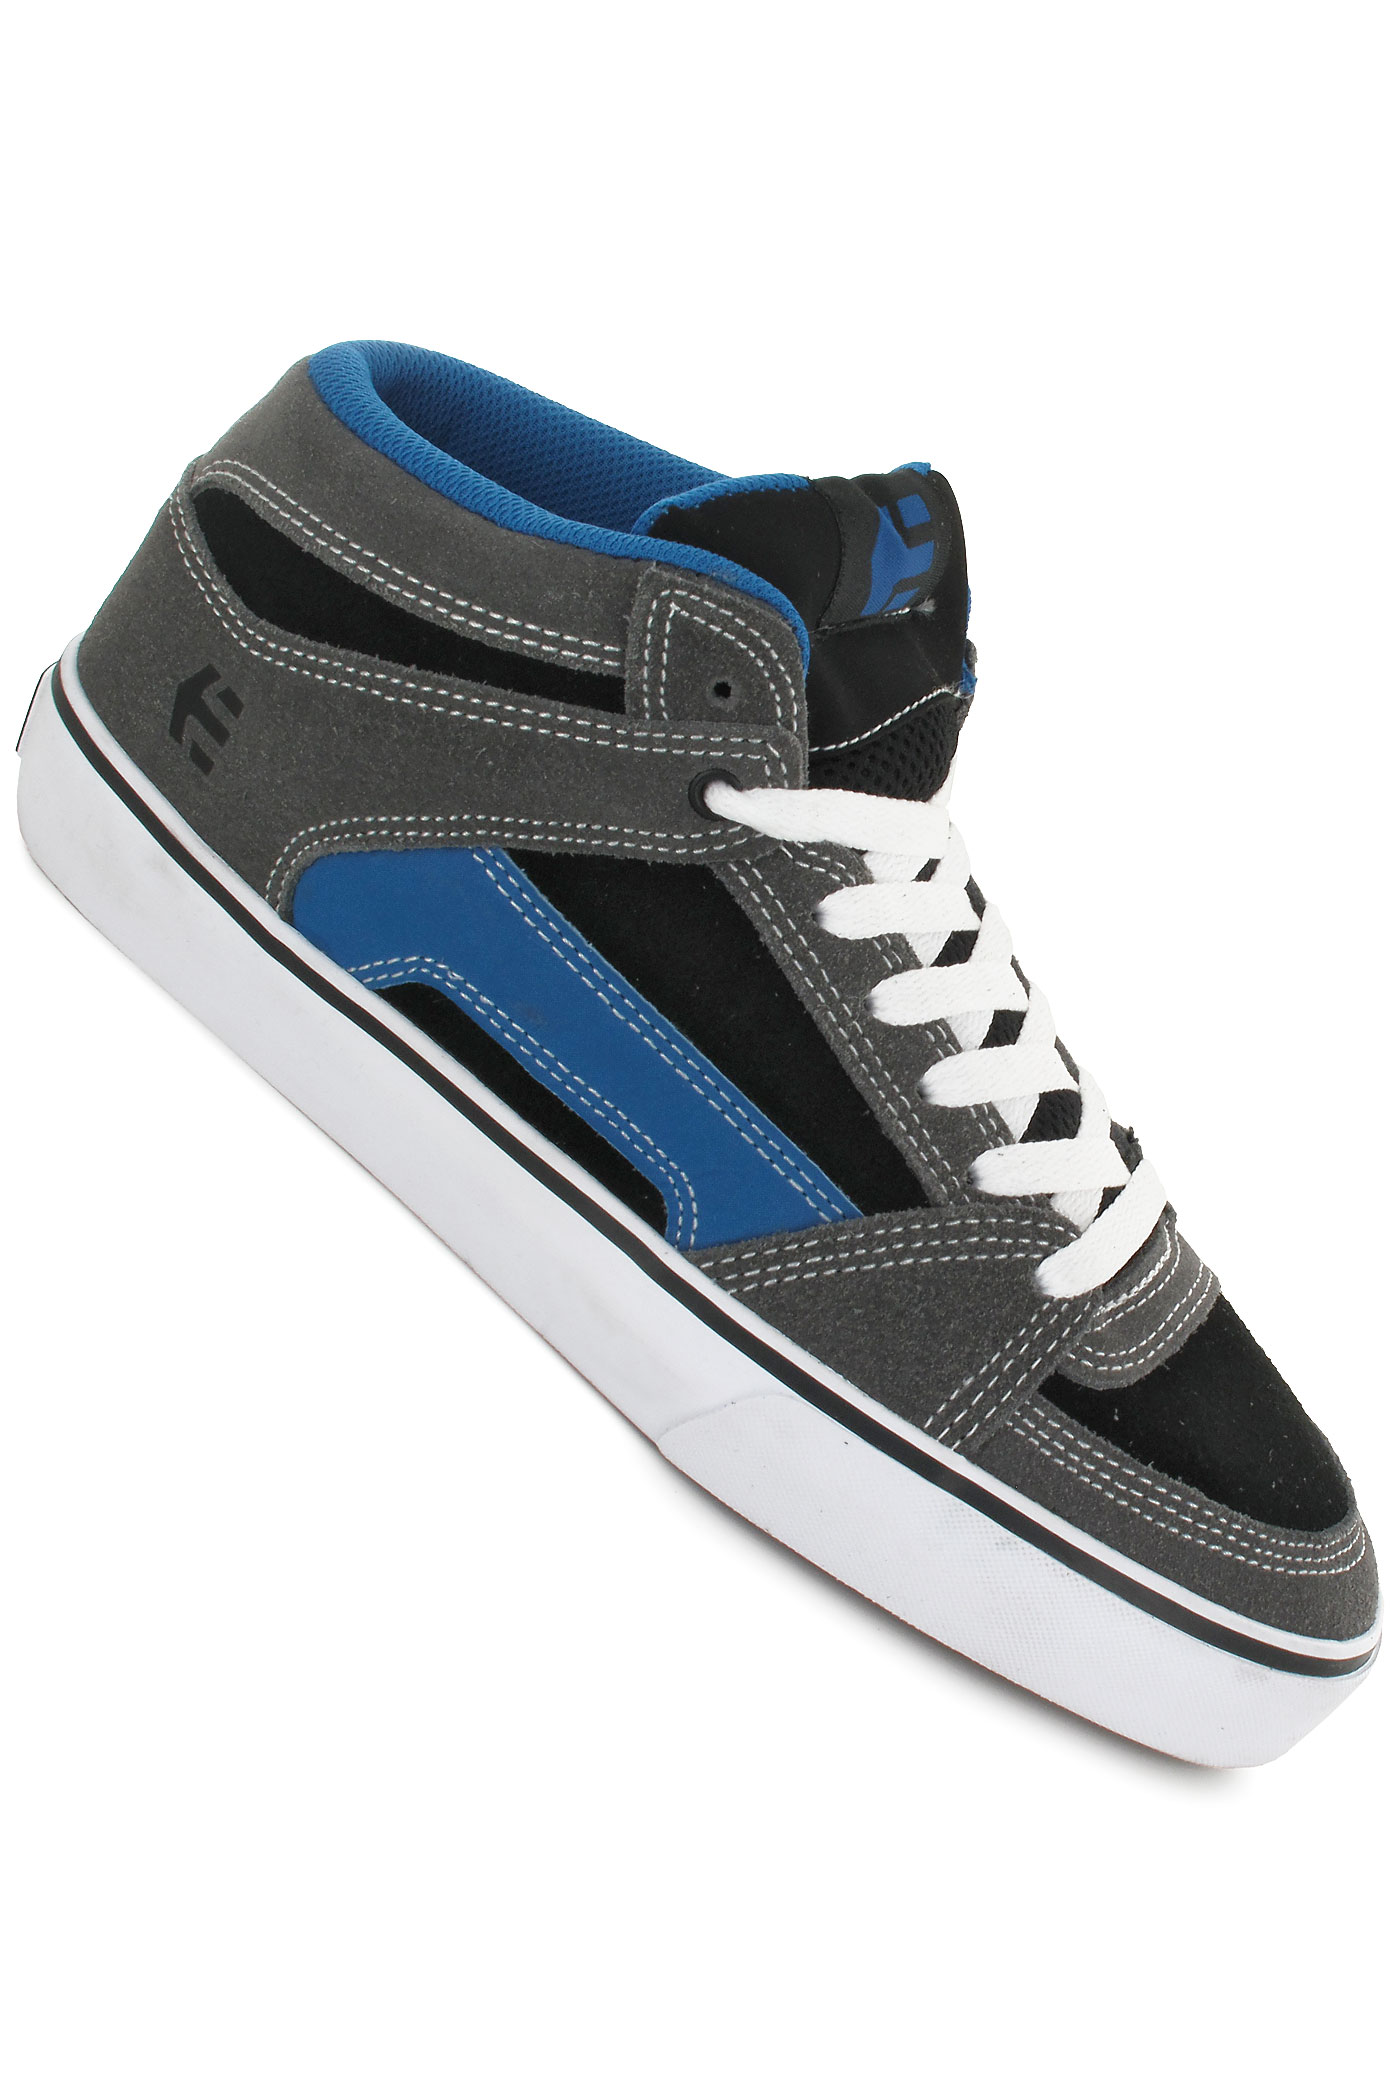 Etnies Rvm Blue Etnies Rvm Shoe Grey Black